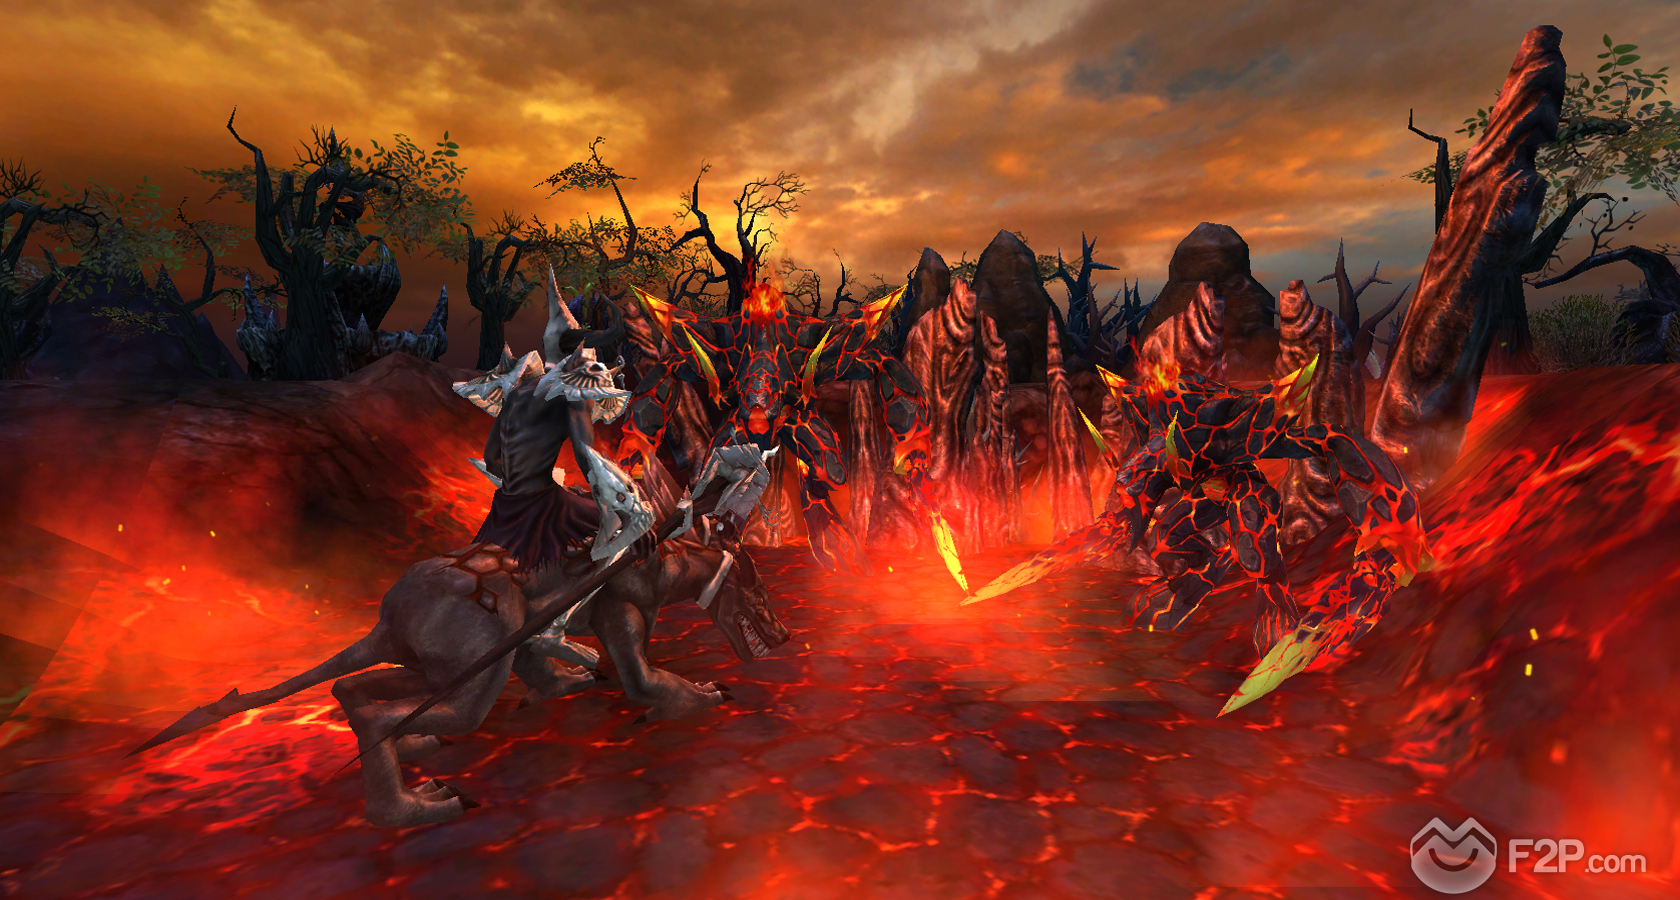 Click image for larger version.Name:Realm of the Titans 2.jpgViews:331Size:1.23 MBID:3354